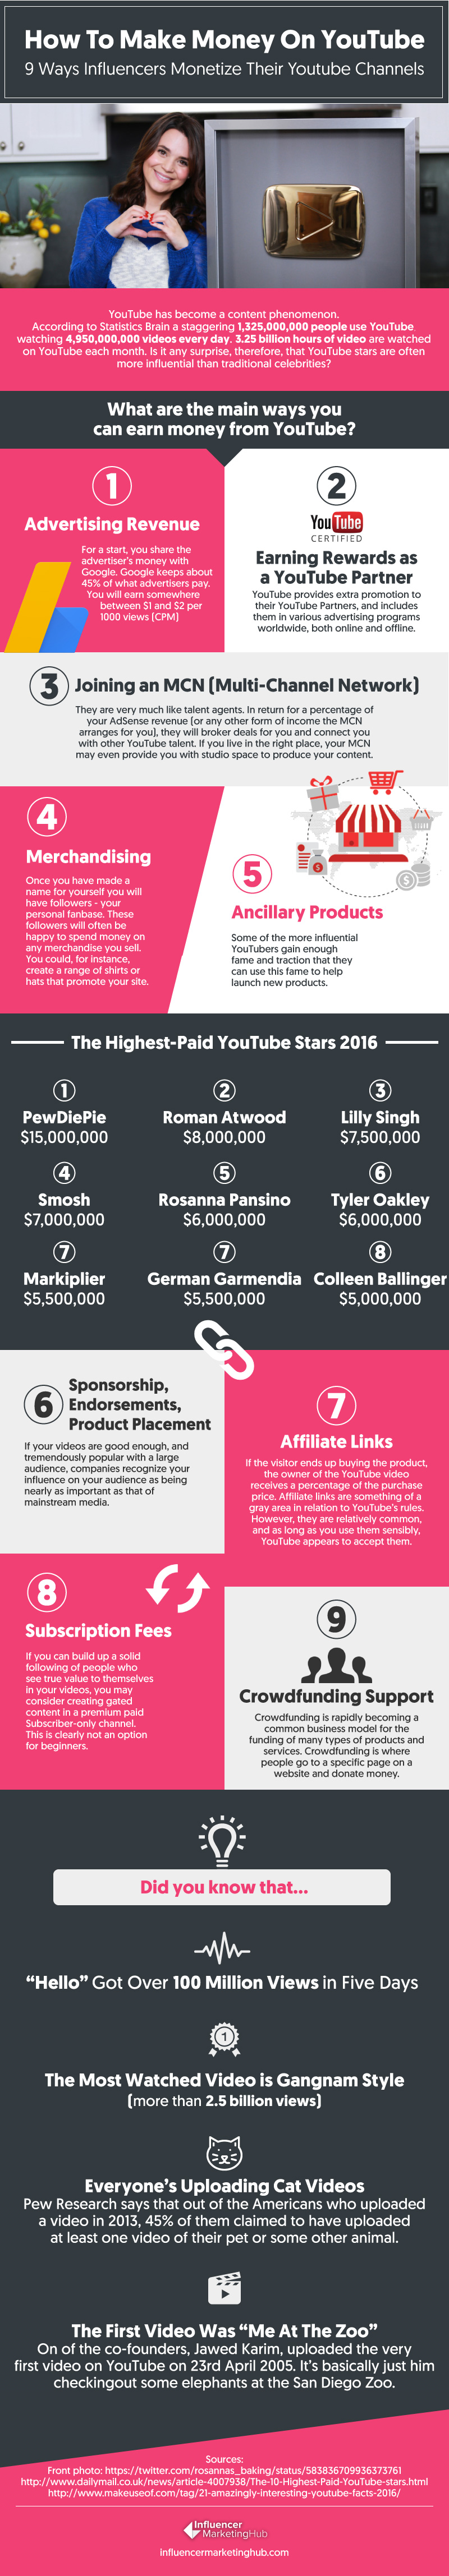 How Influencers Make Money on YouTube [Infographic] | Social Media Today